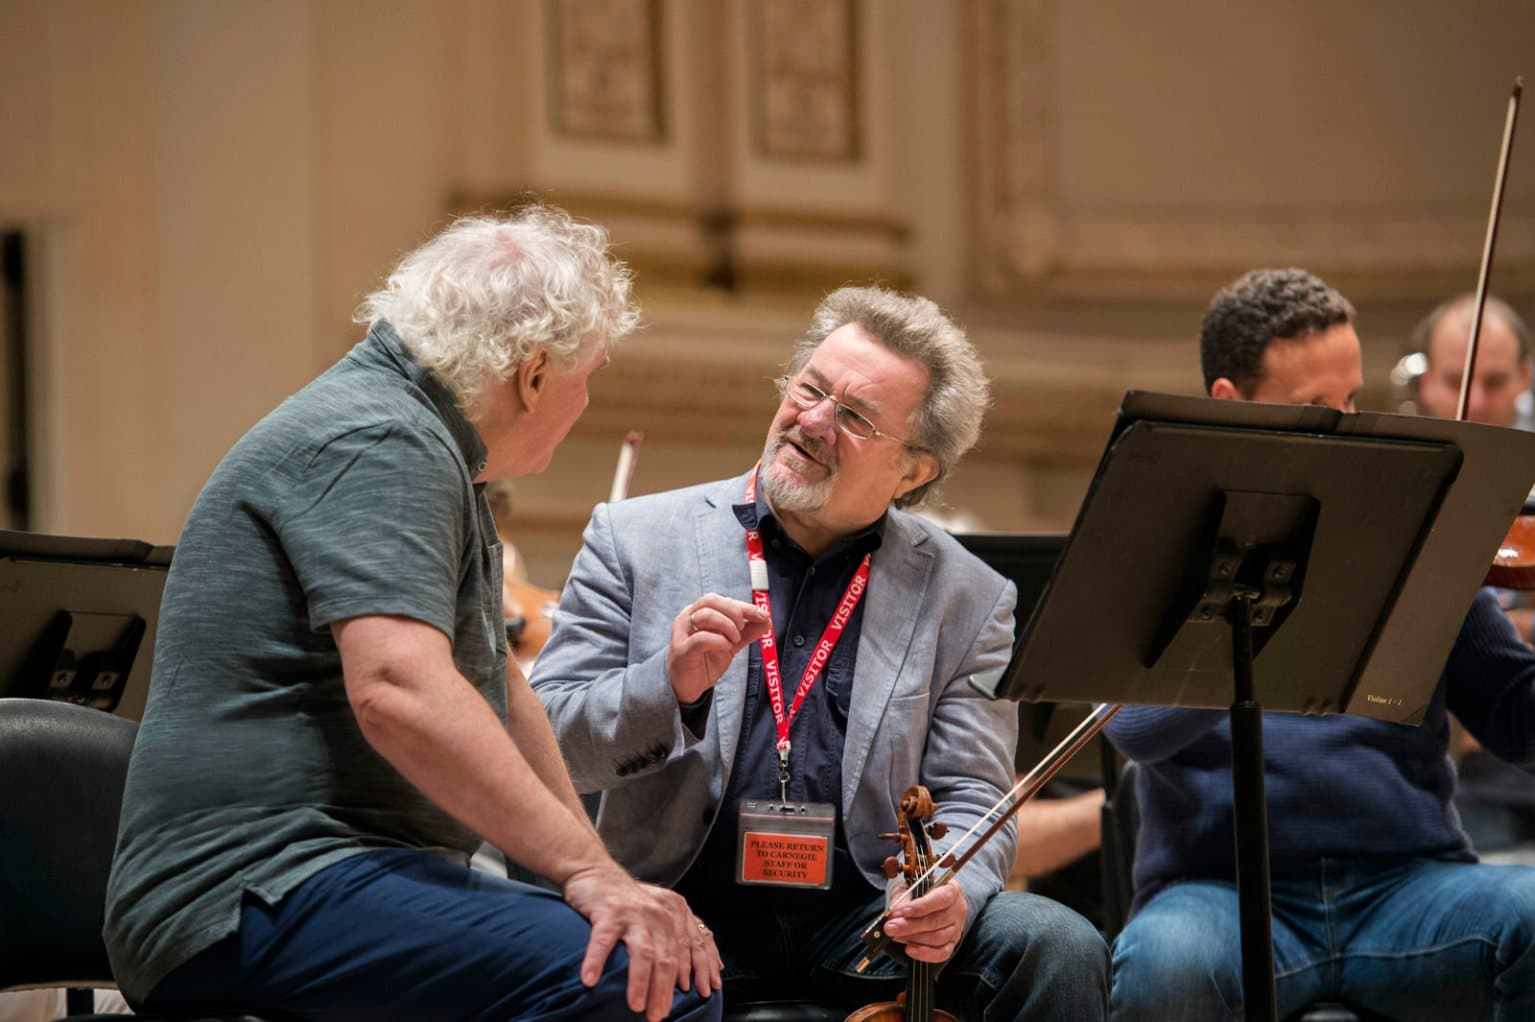 Berlin Phil concertmaster: I said goodbye and I don't want to go back any more.